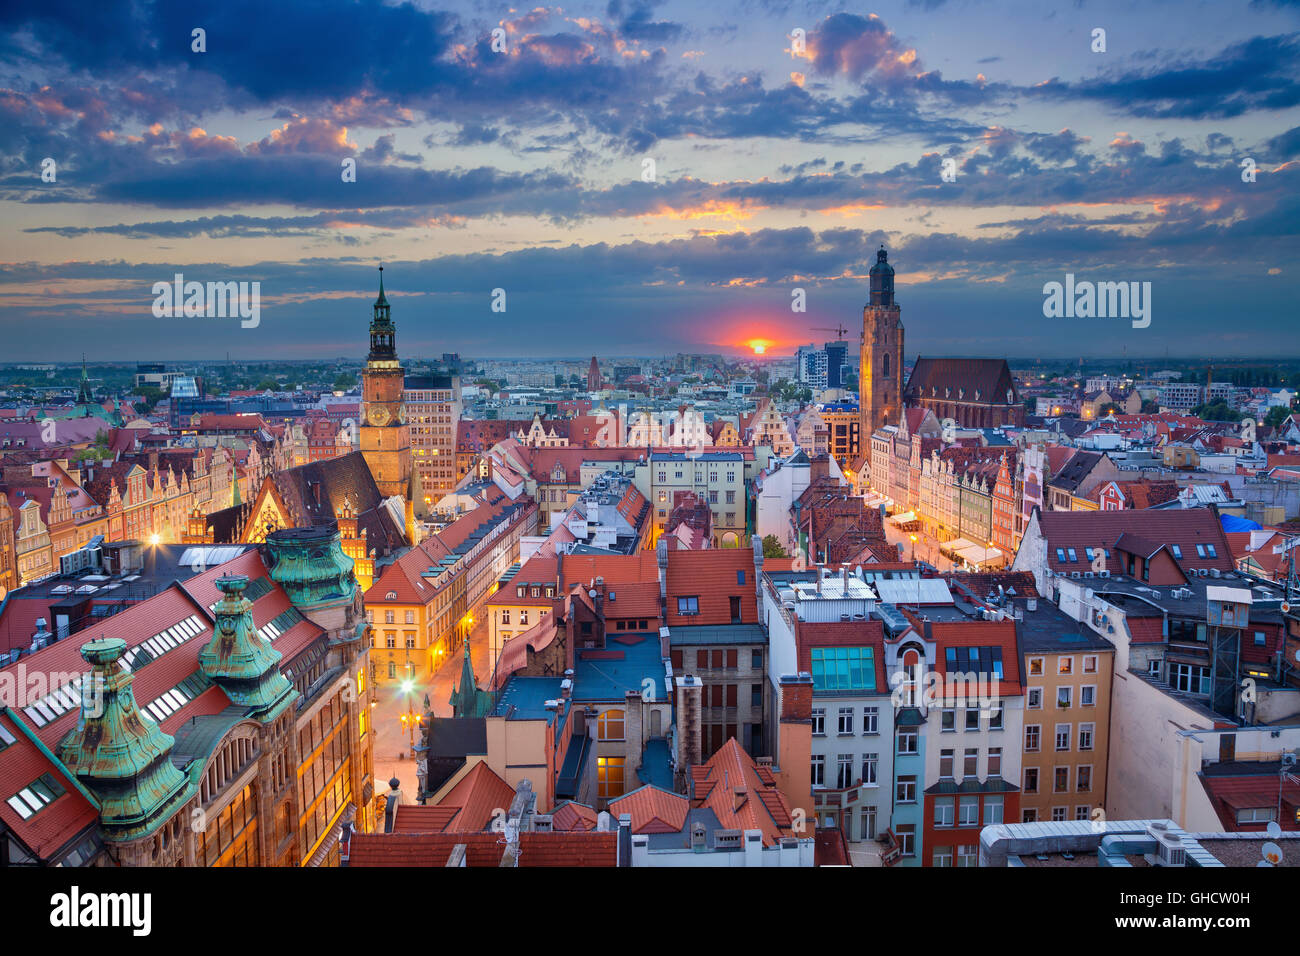 Wroclaw. Image of Wroclaw, Poland during twilight blue hour. - Stock Image